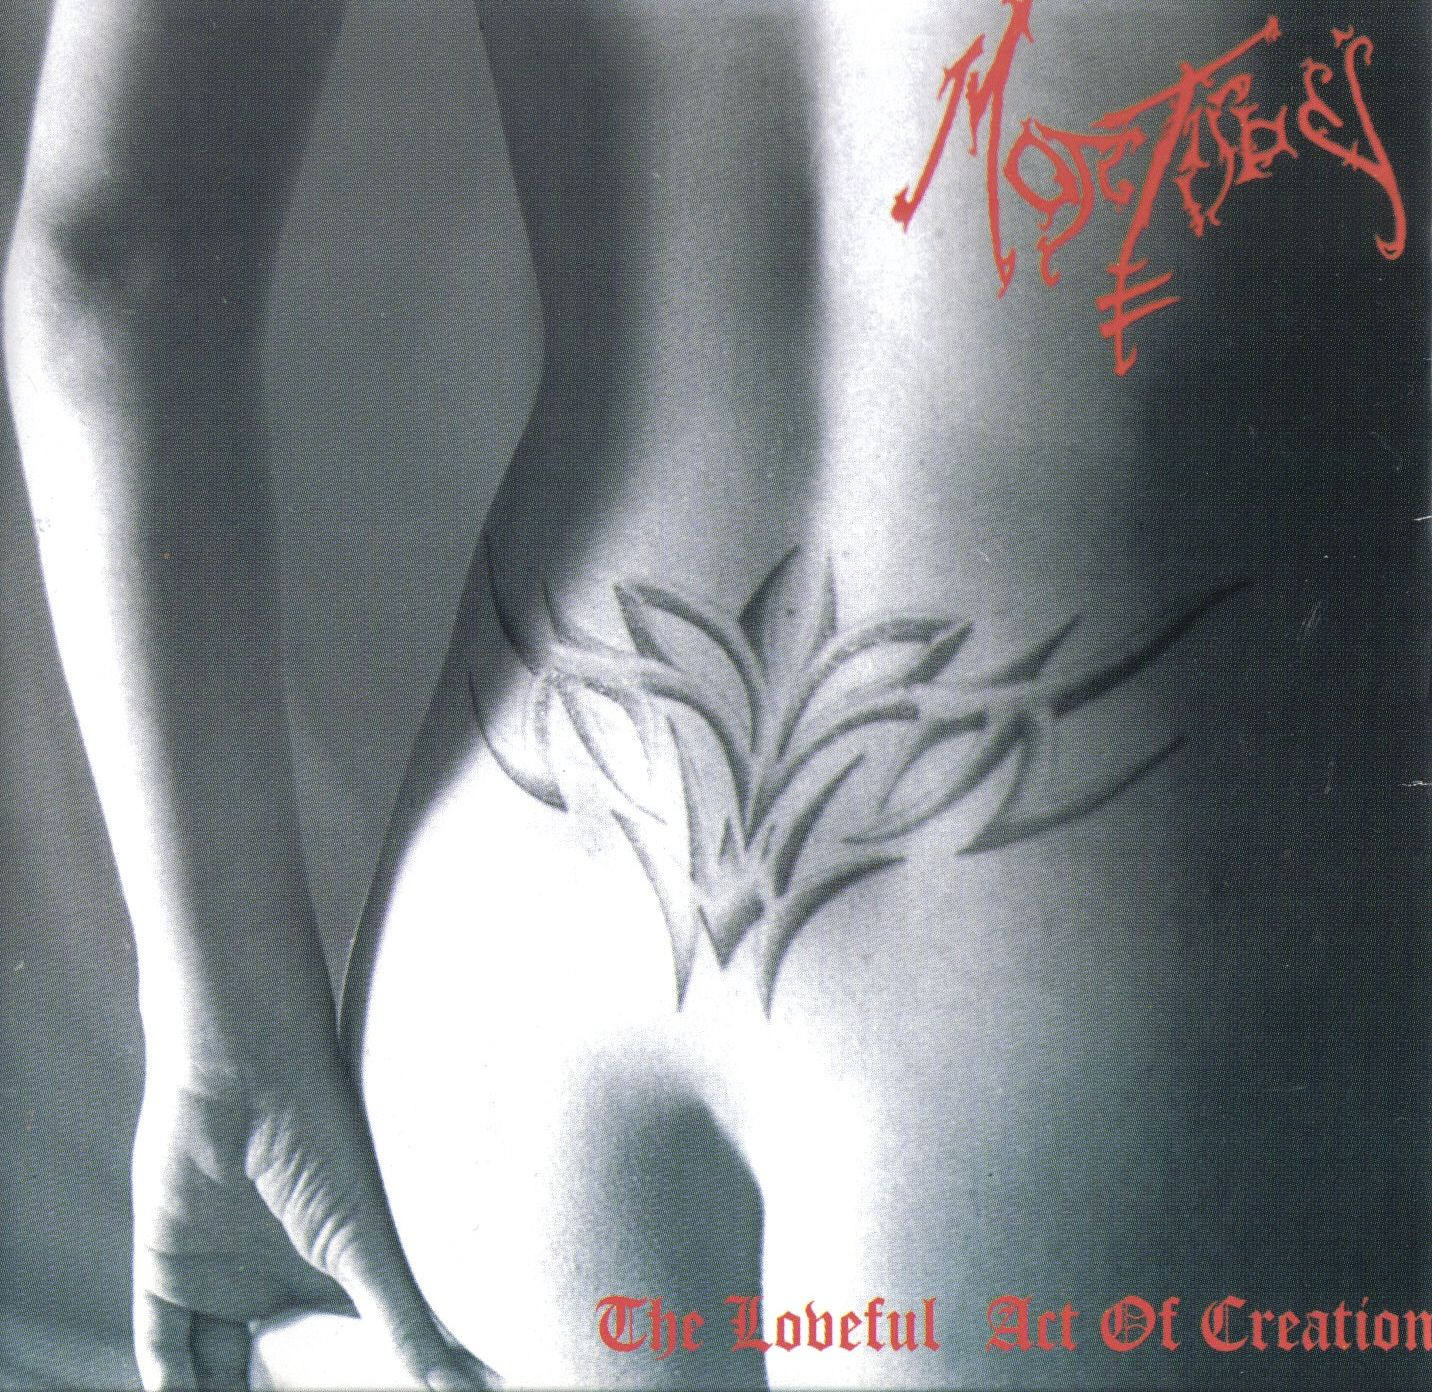 MORTIS DEI The Loveful Act Of Creation `03